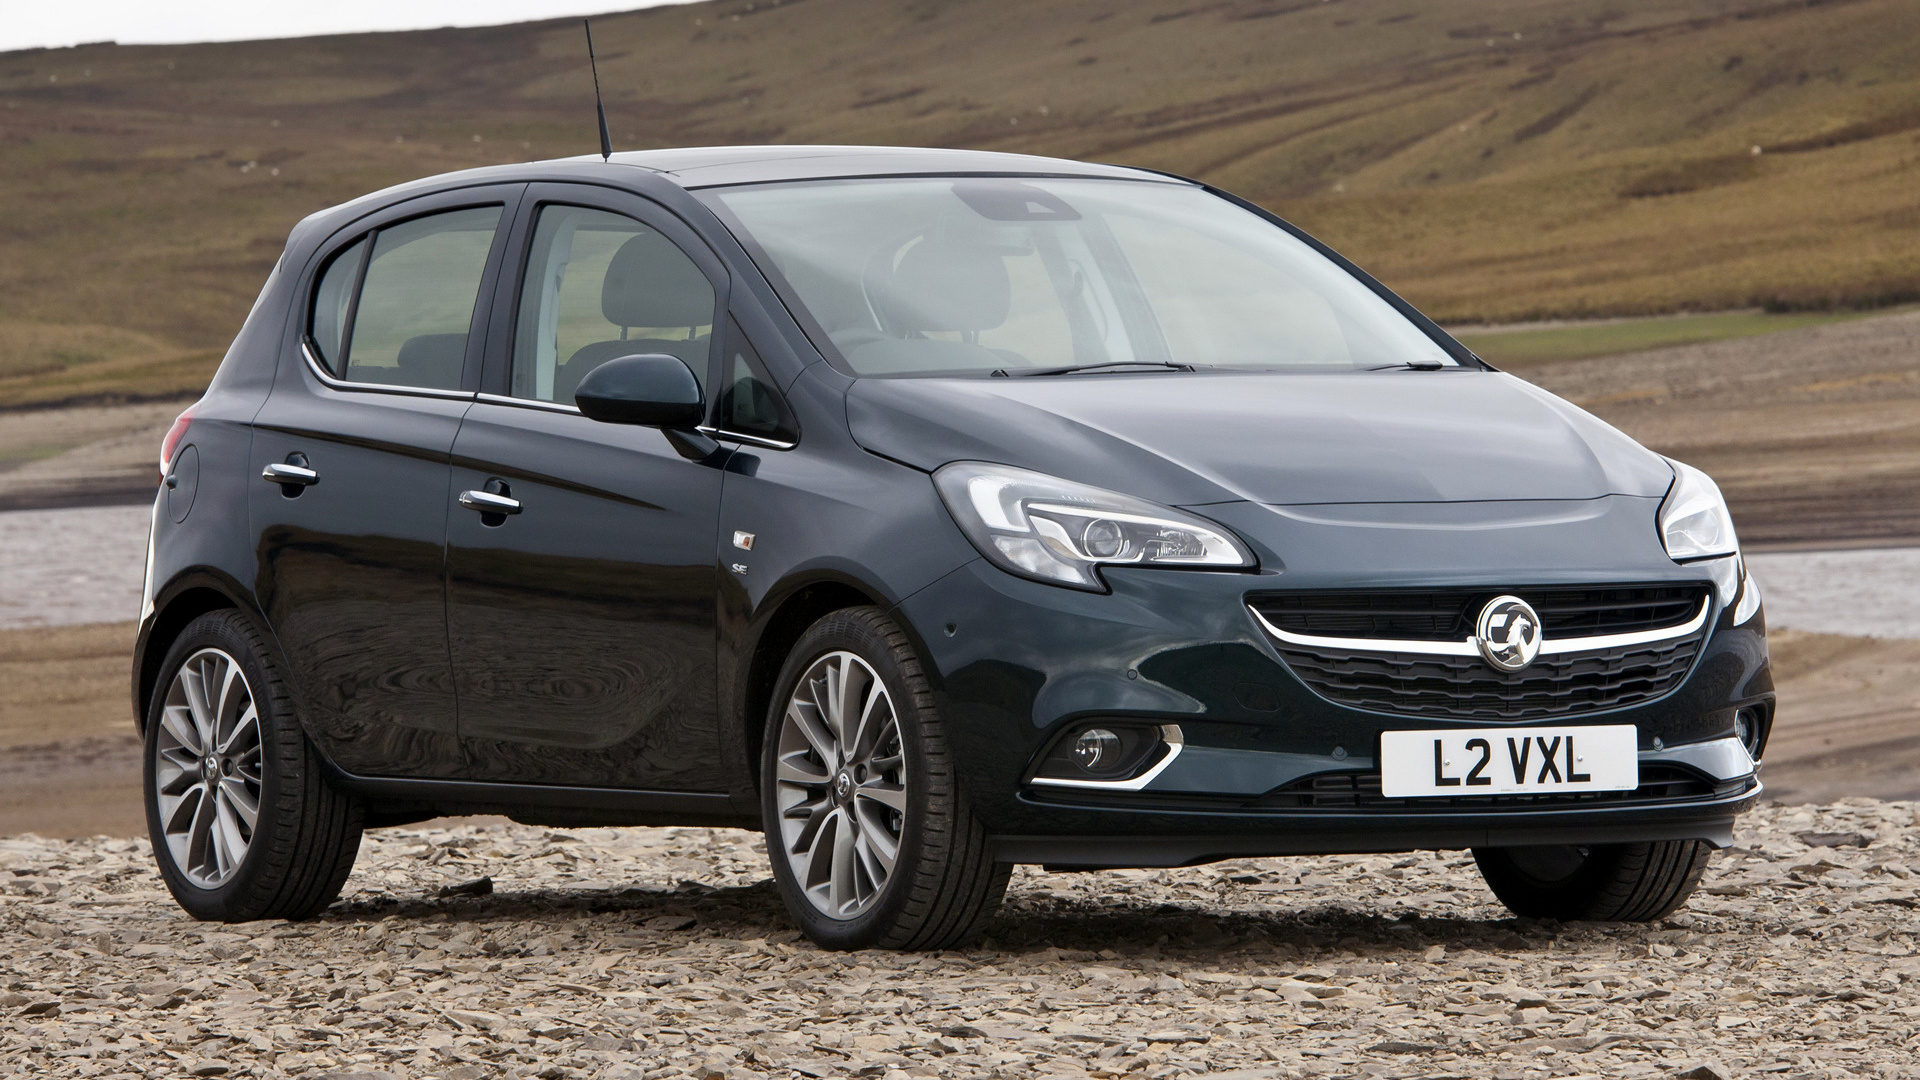 HD 169 & Vauxhall Corsa SE 5-door (2014) Wallpapers and HD Images - Car Pixel